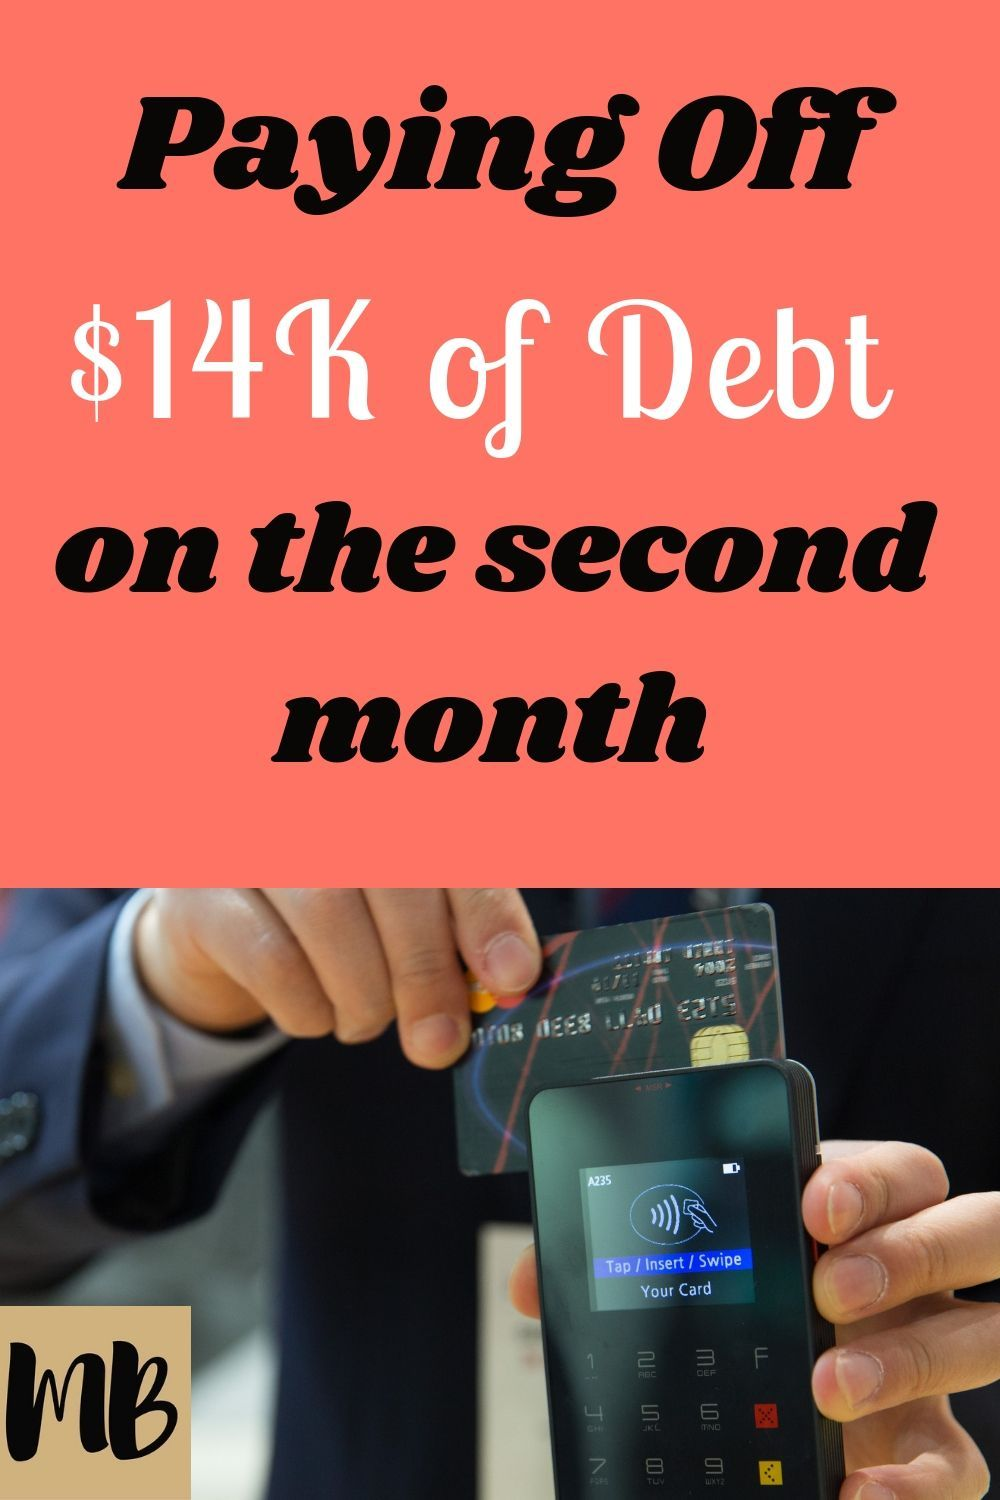 Paying Off 14k of Debt on the Second Month Feature